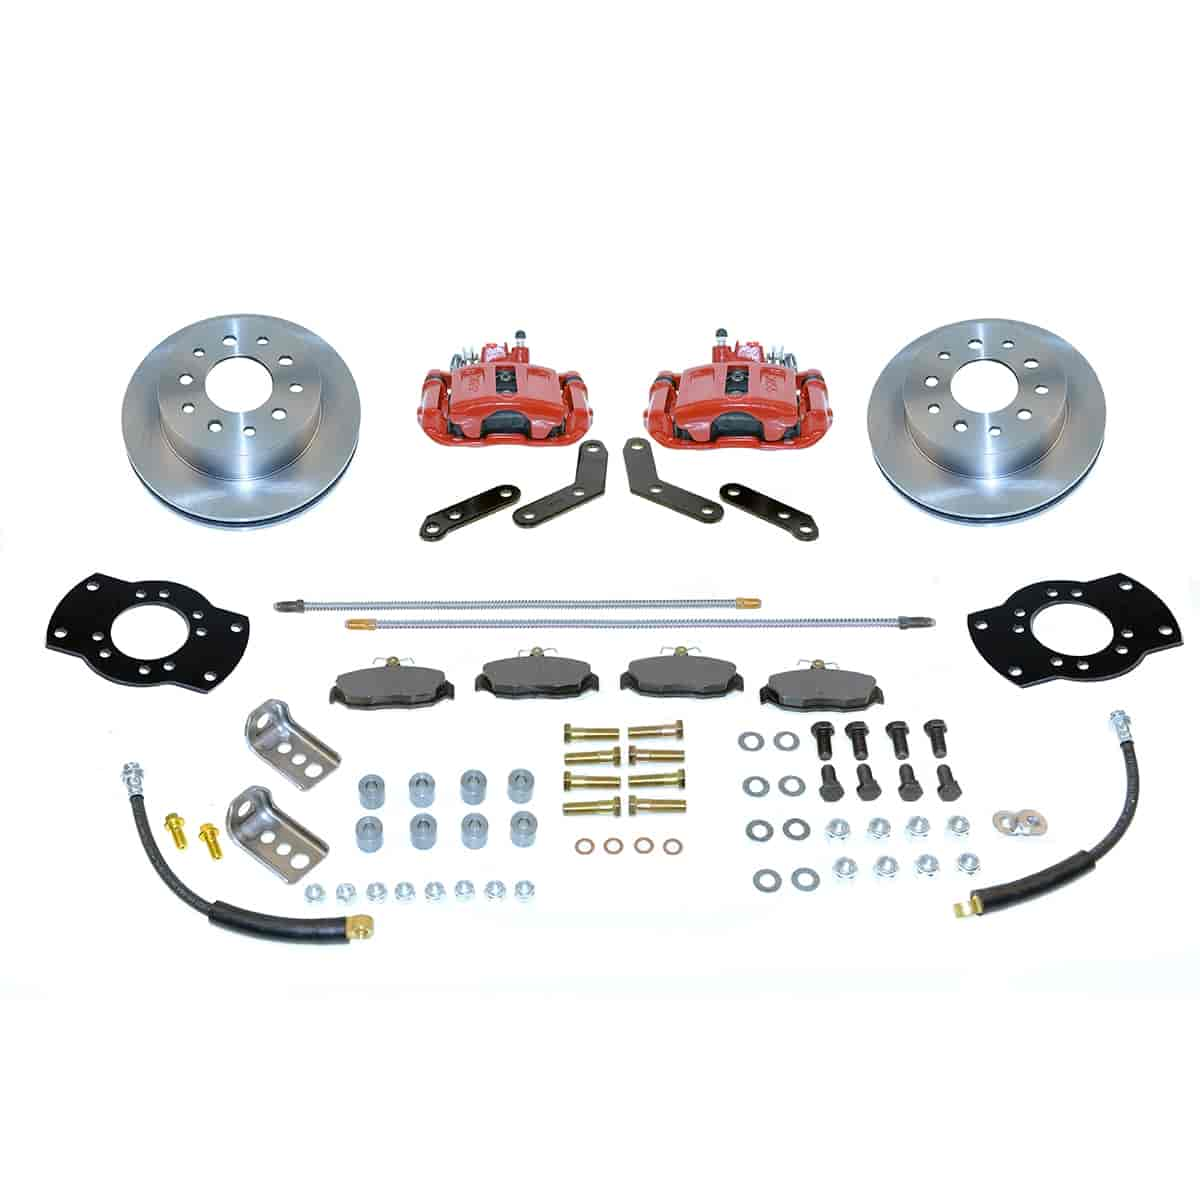 Stainless Steel Brakes A125R - Stainless Steel Brakes Single Piston Rear Disc Brake Conversion Kit